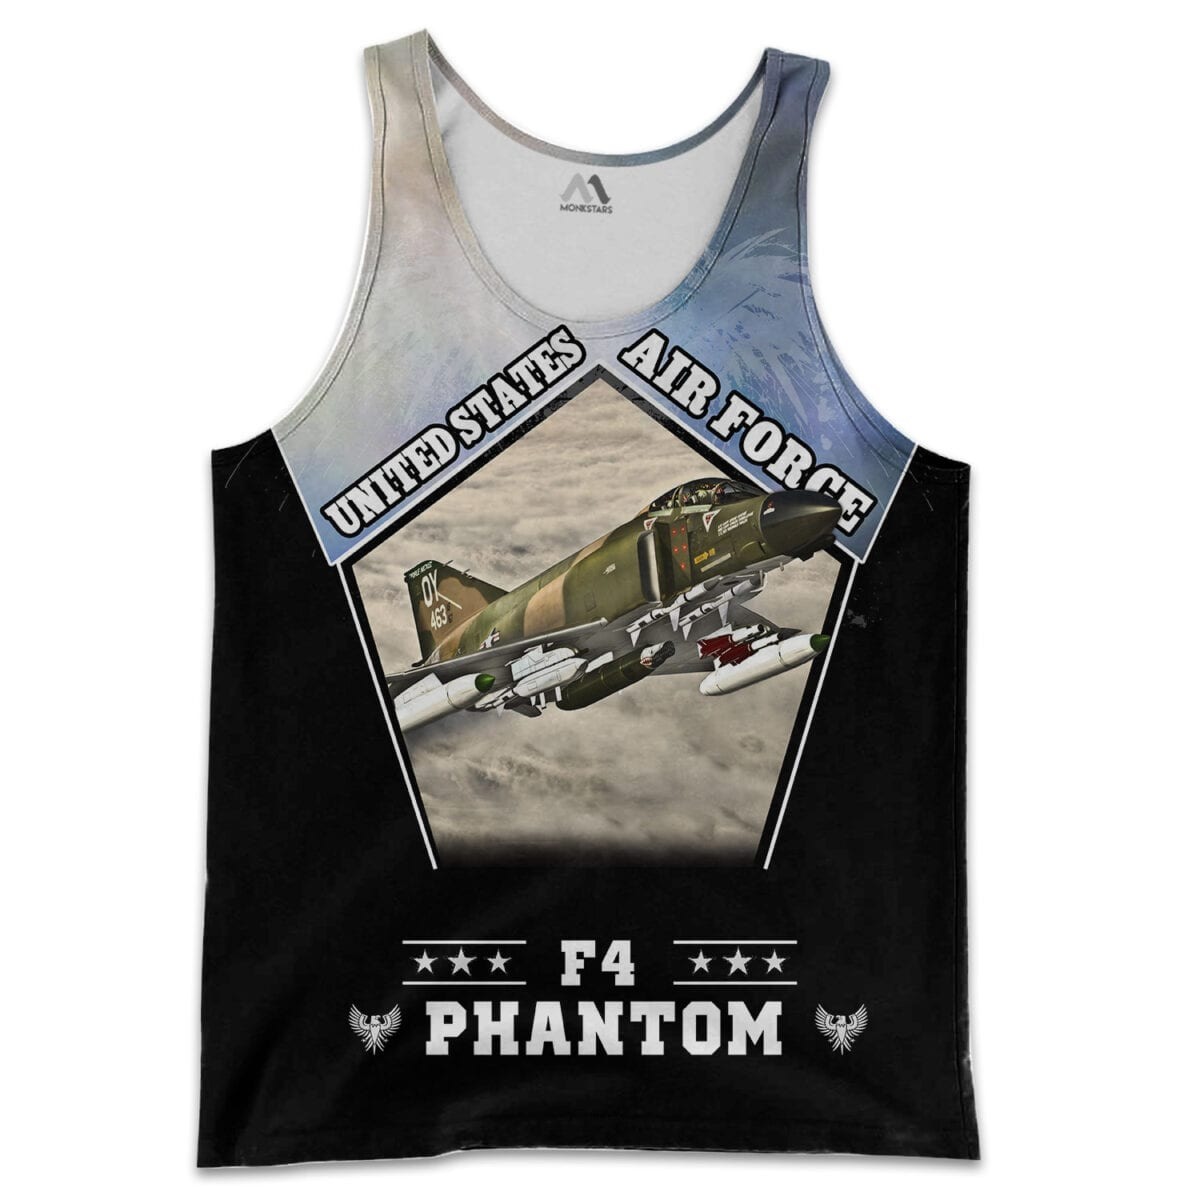 F4 Phantom 3D All Over Printed Shirts for Men and Women 10